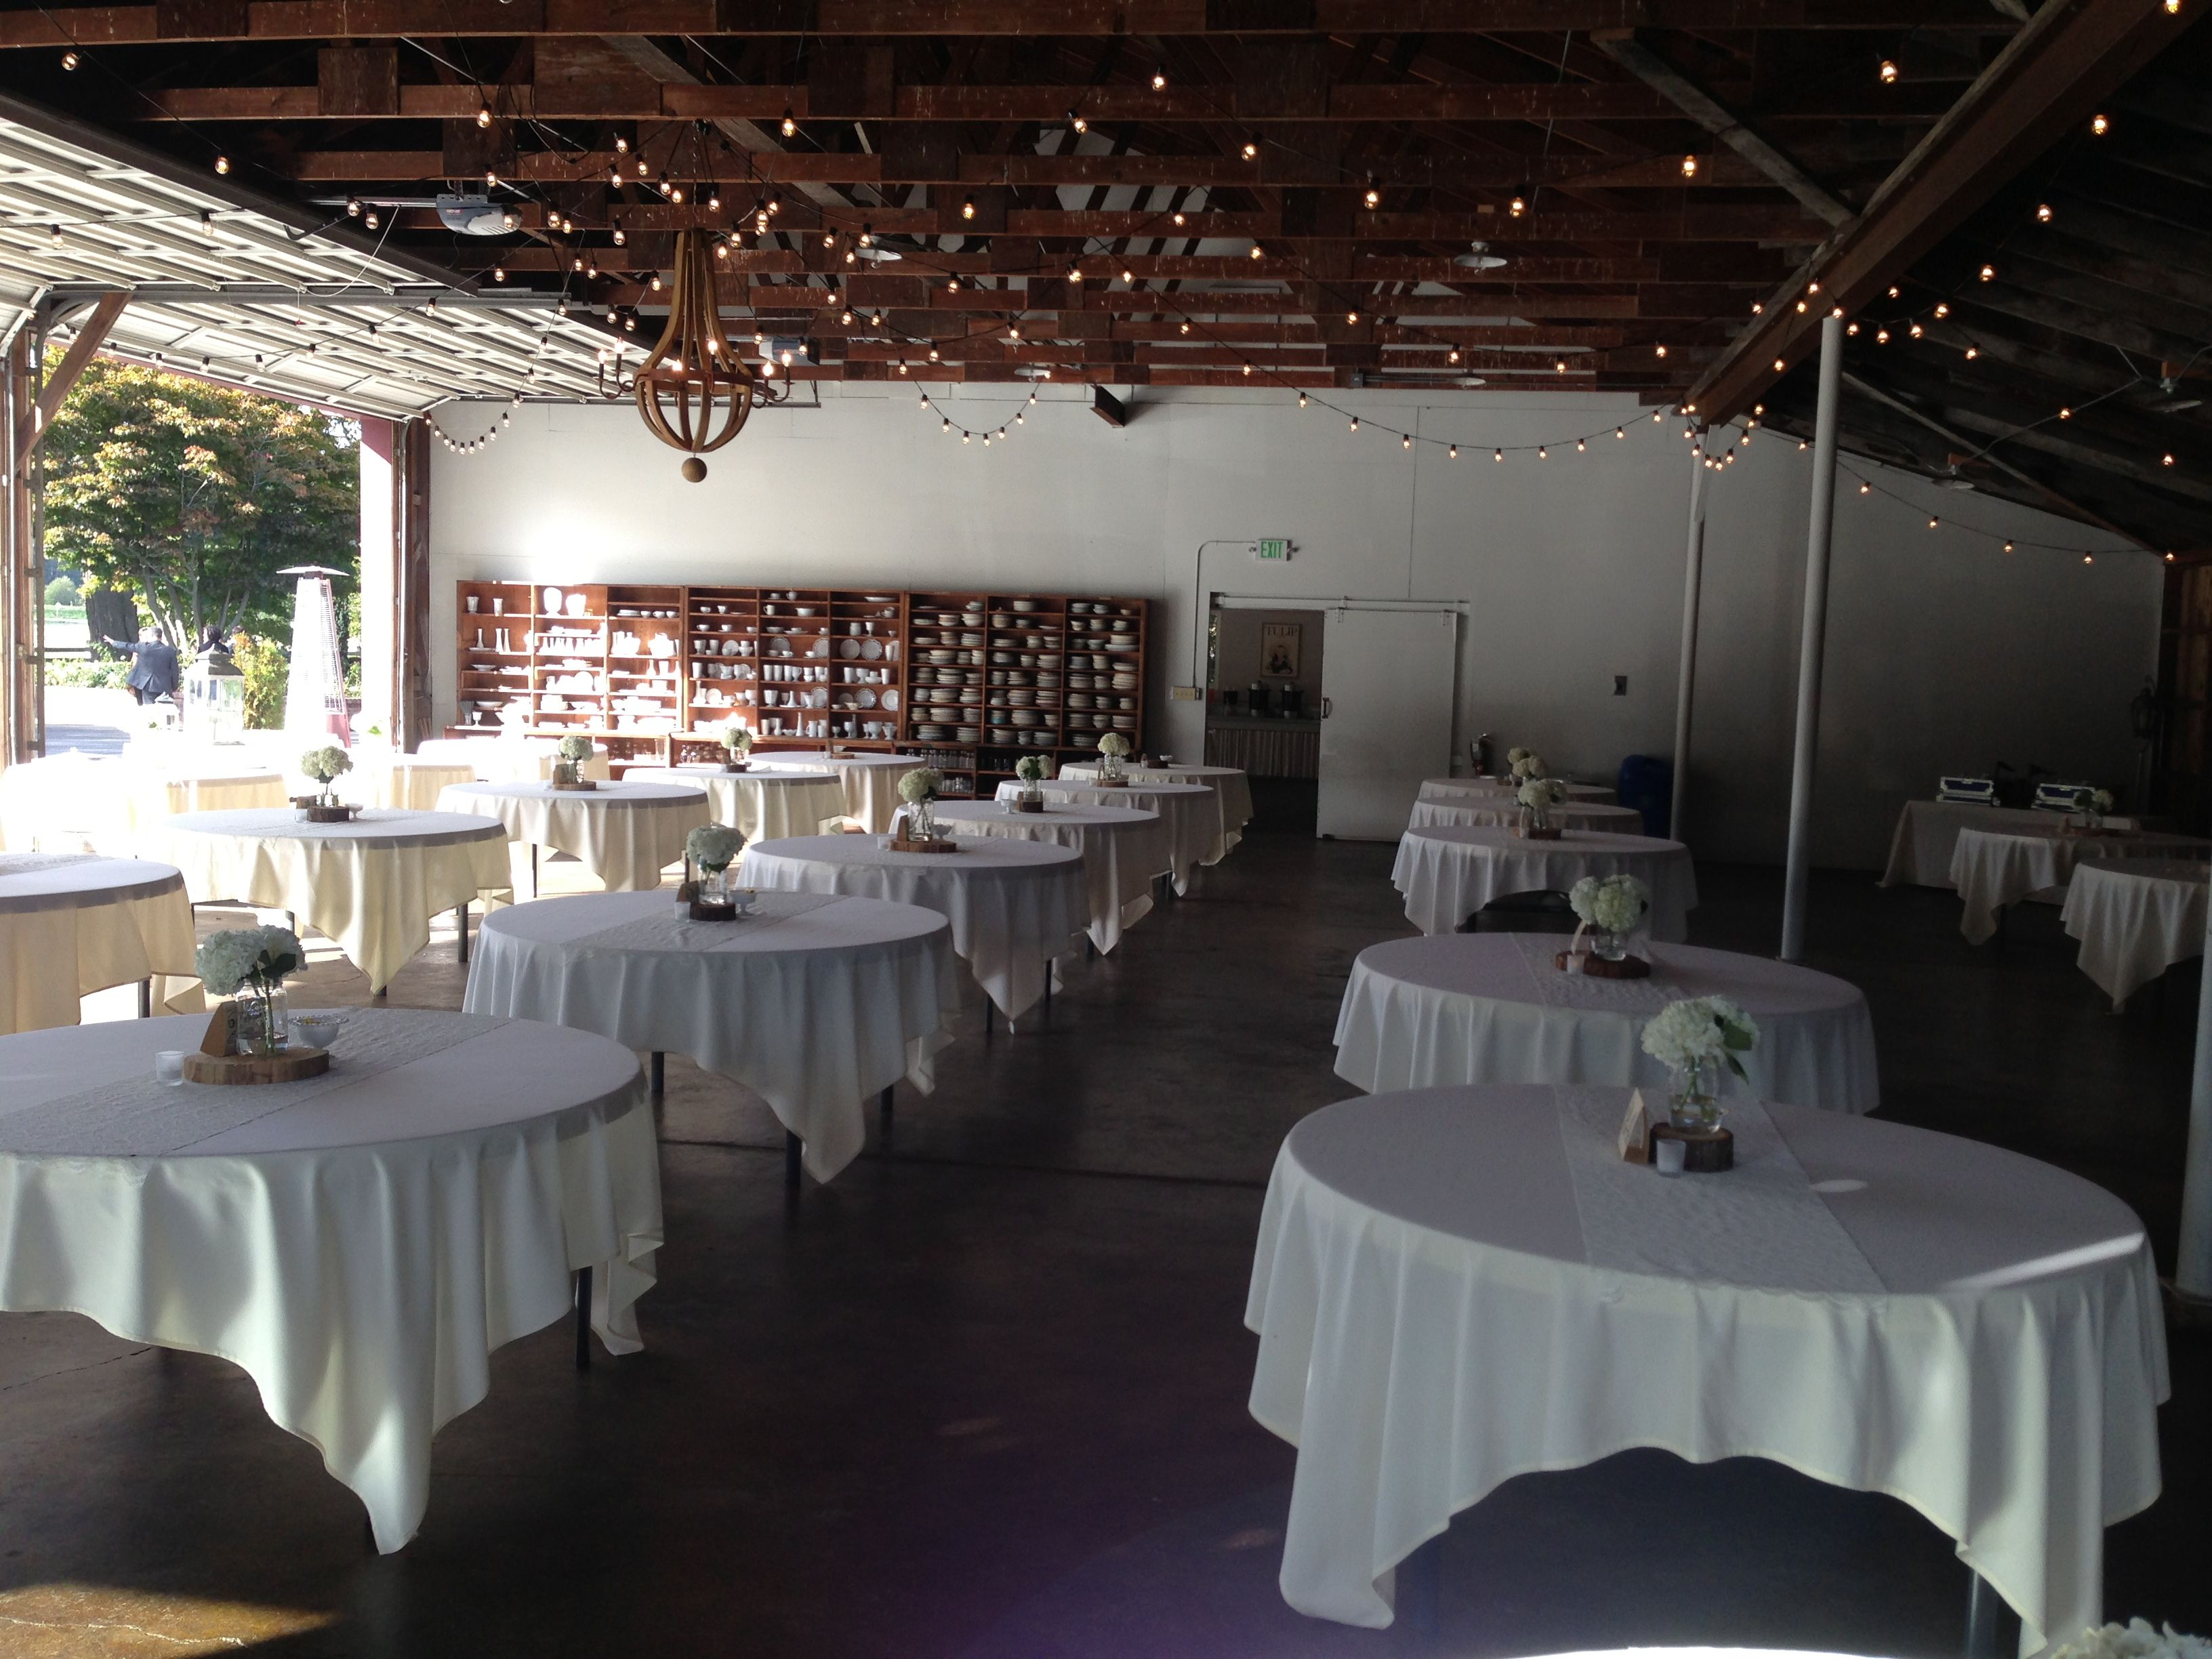 Reception room with classic white linens